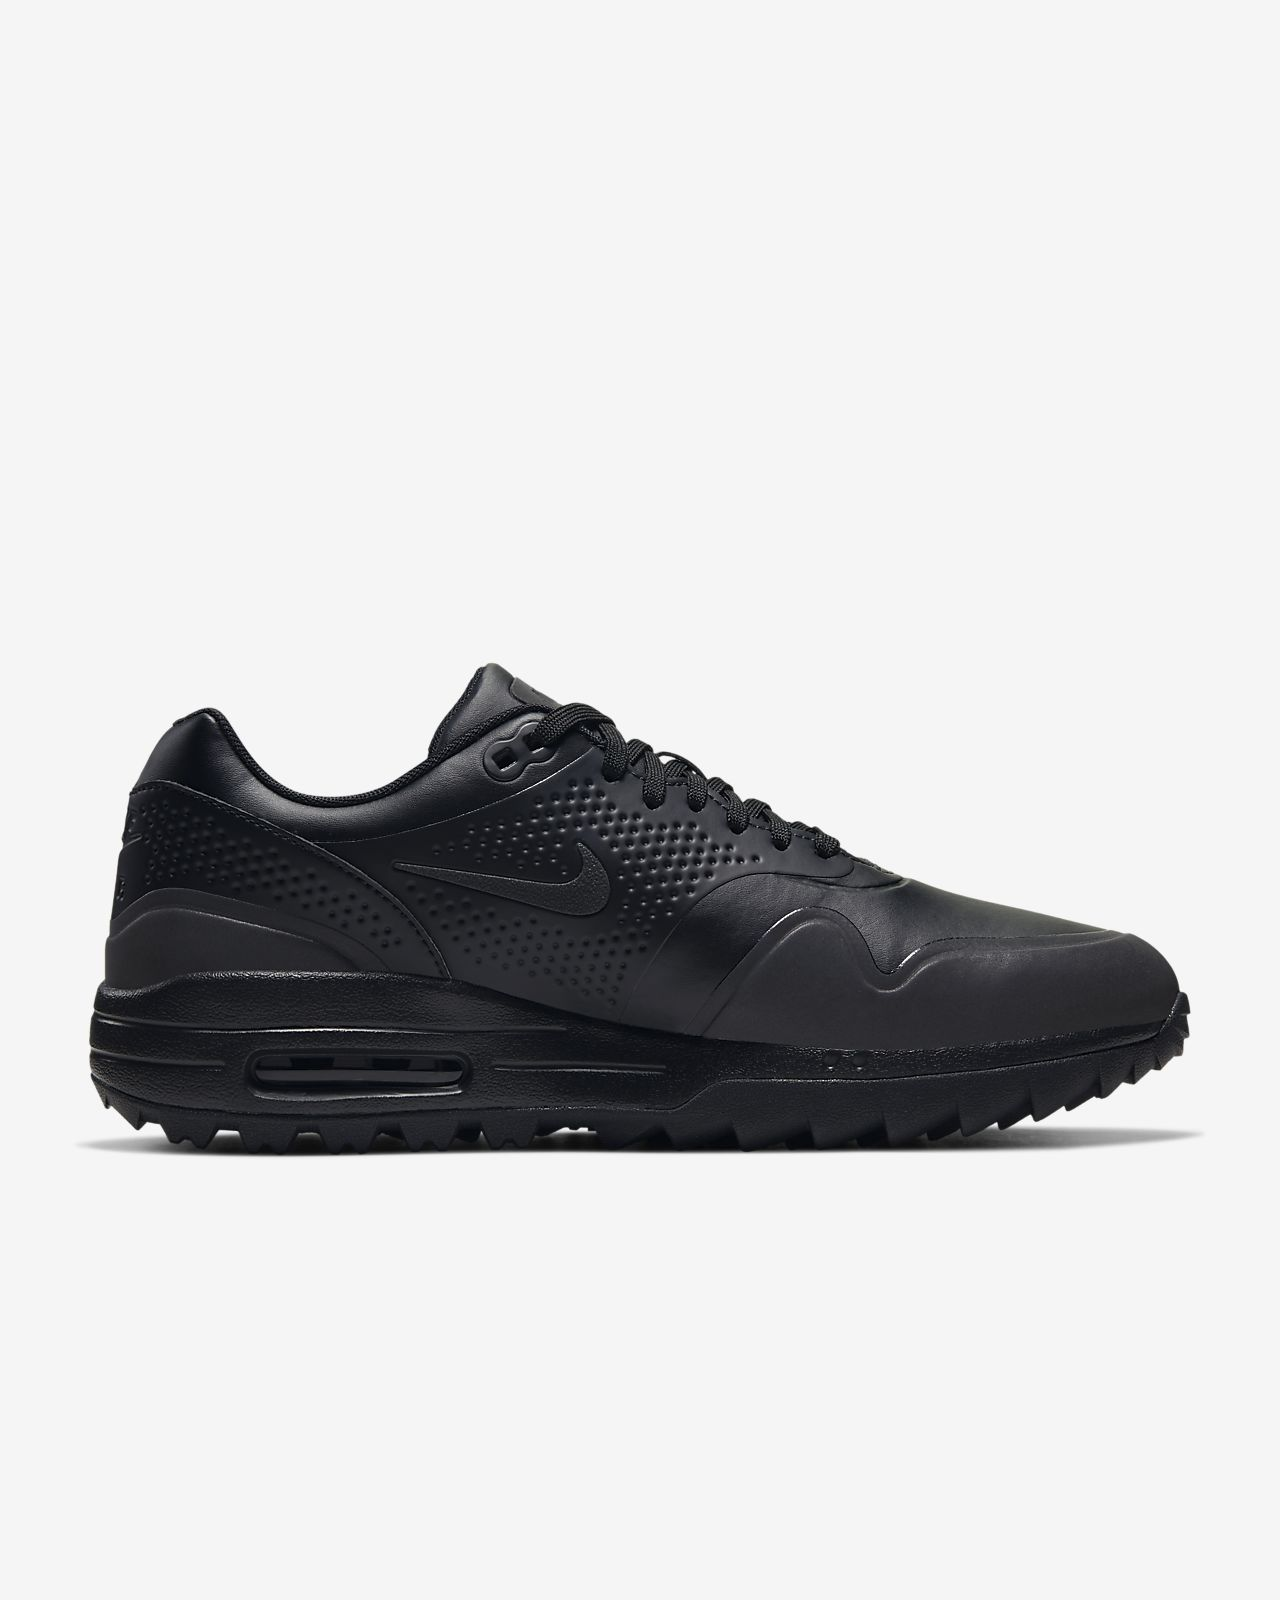 NIKE AIR MAX 1 G GOLF SHOES 2019 BLACKWHITEGUM CONTRAST SWOOSH